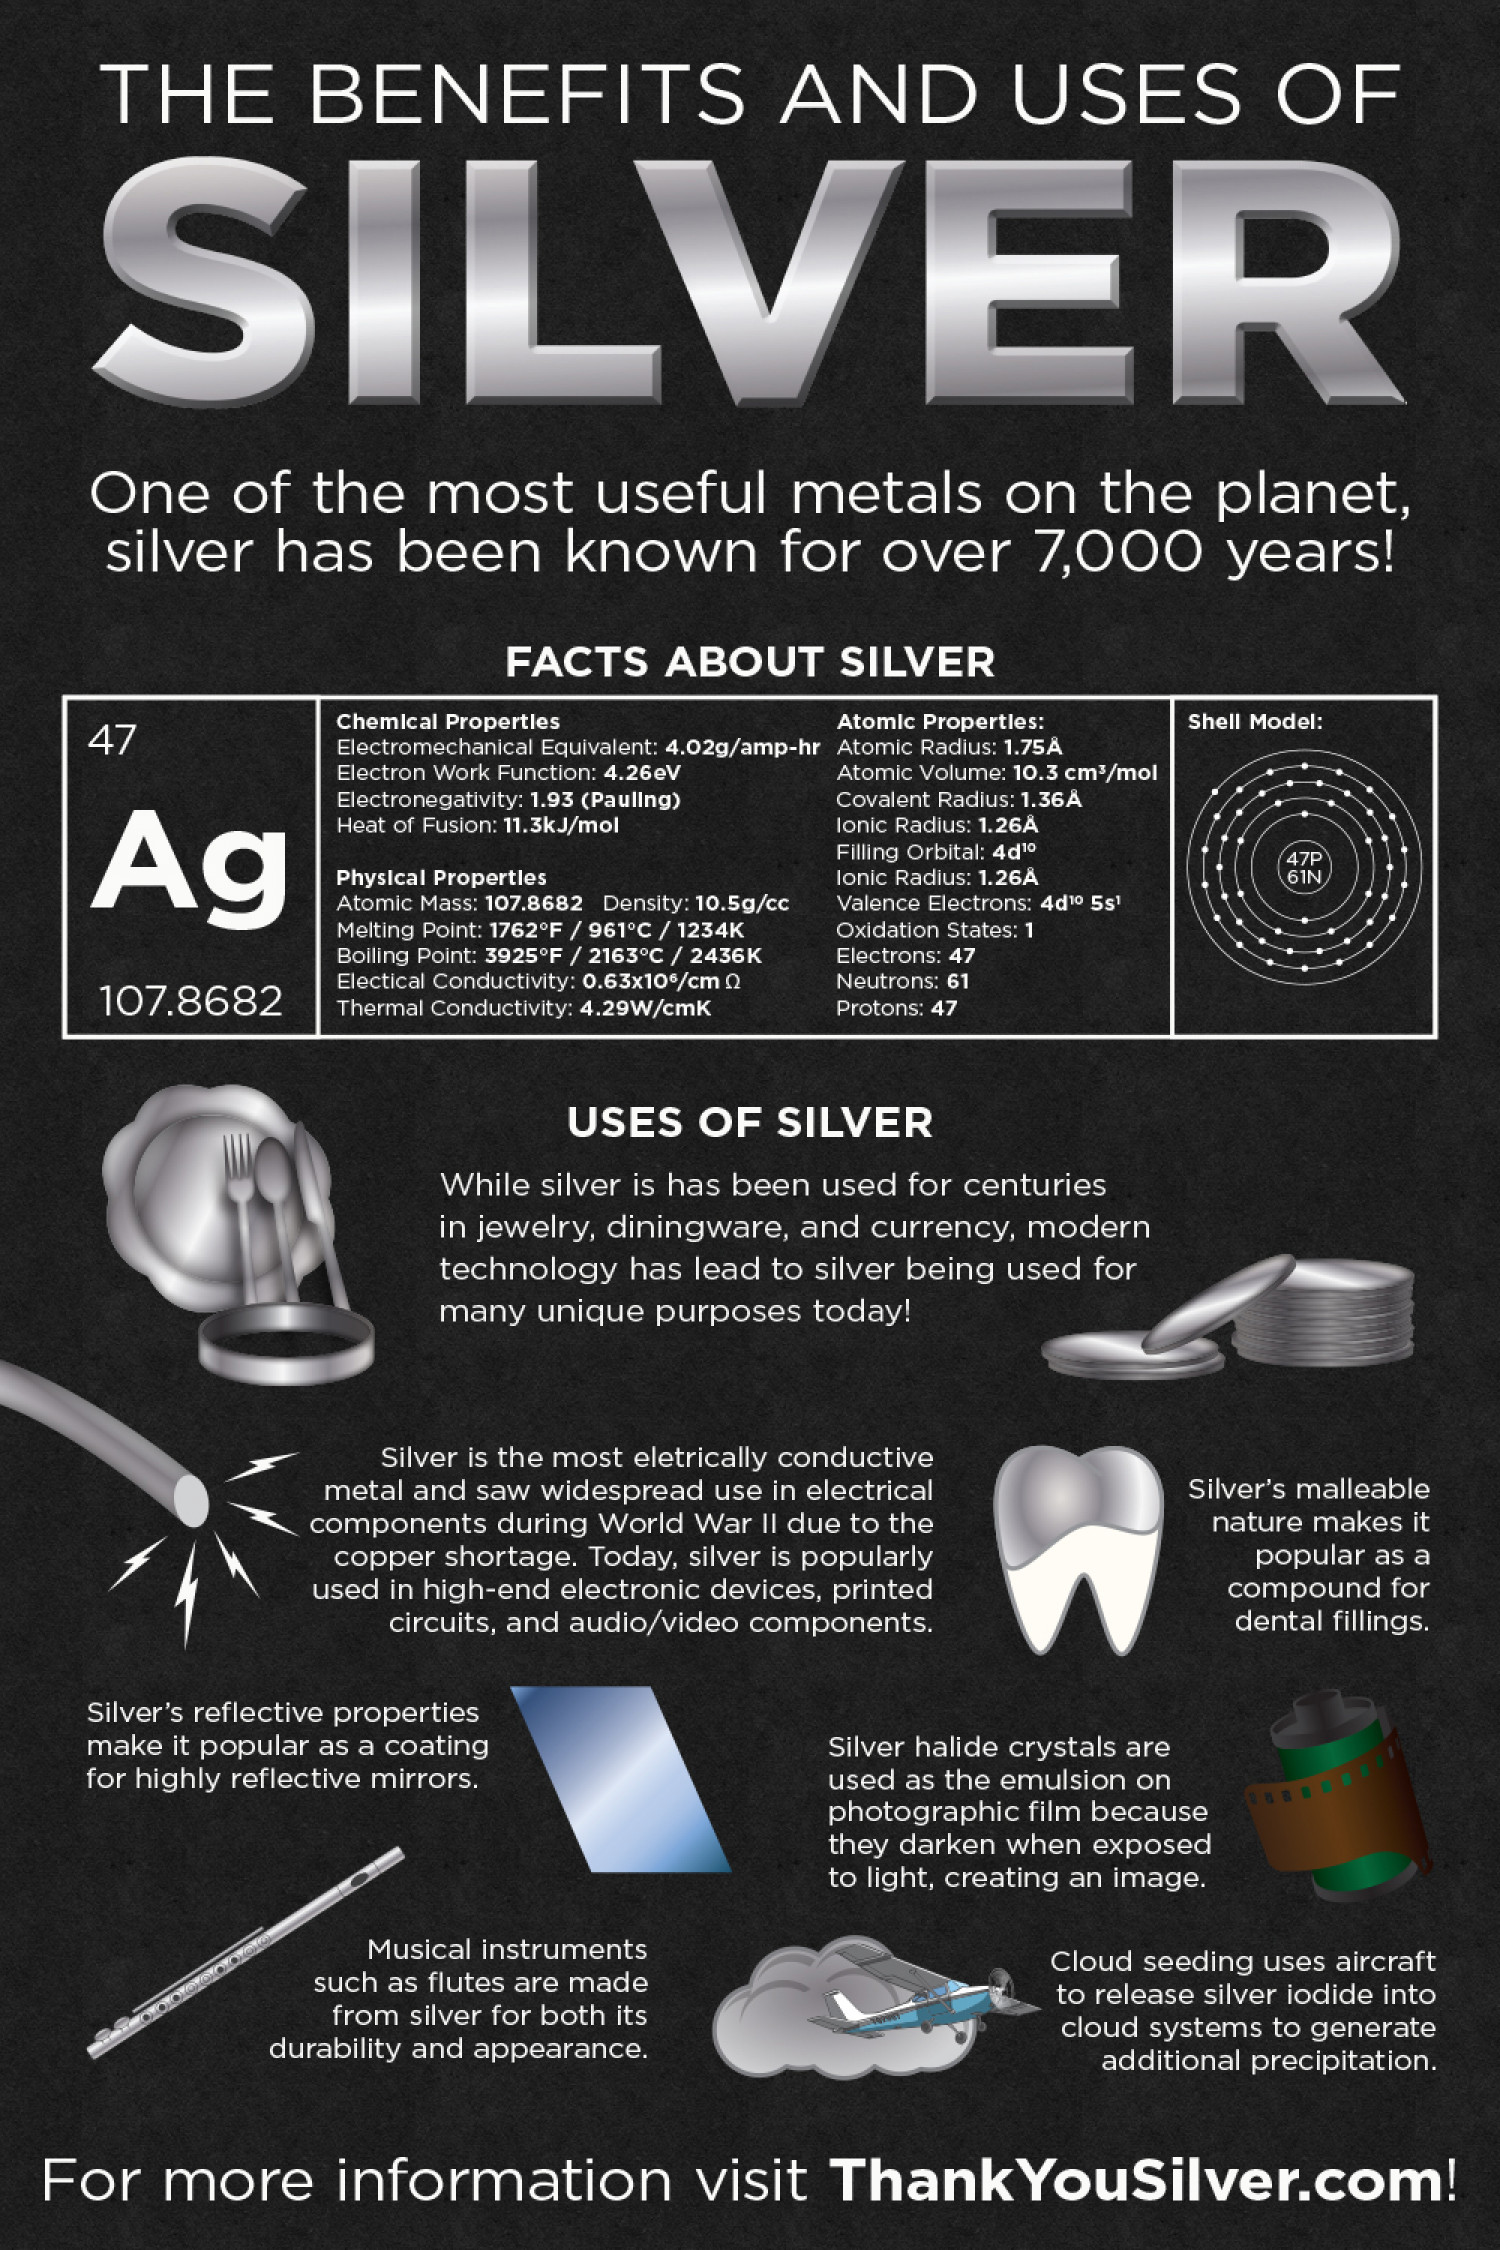 The Benefits and Uses of Silver Infographic